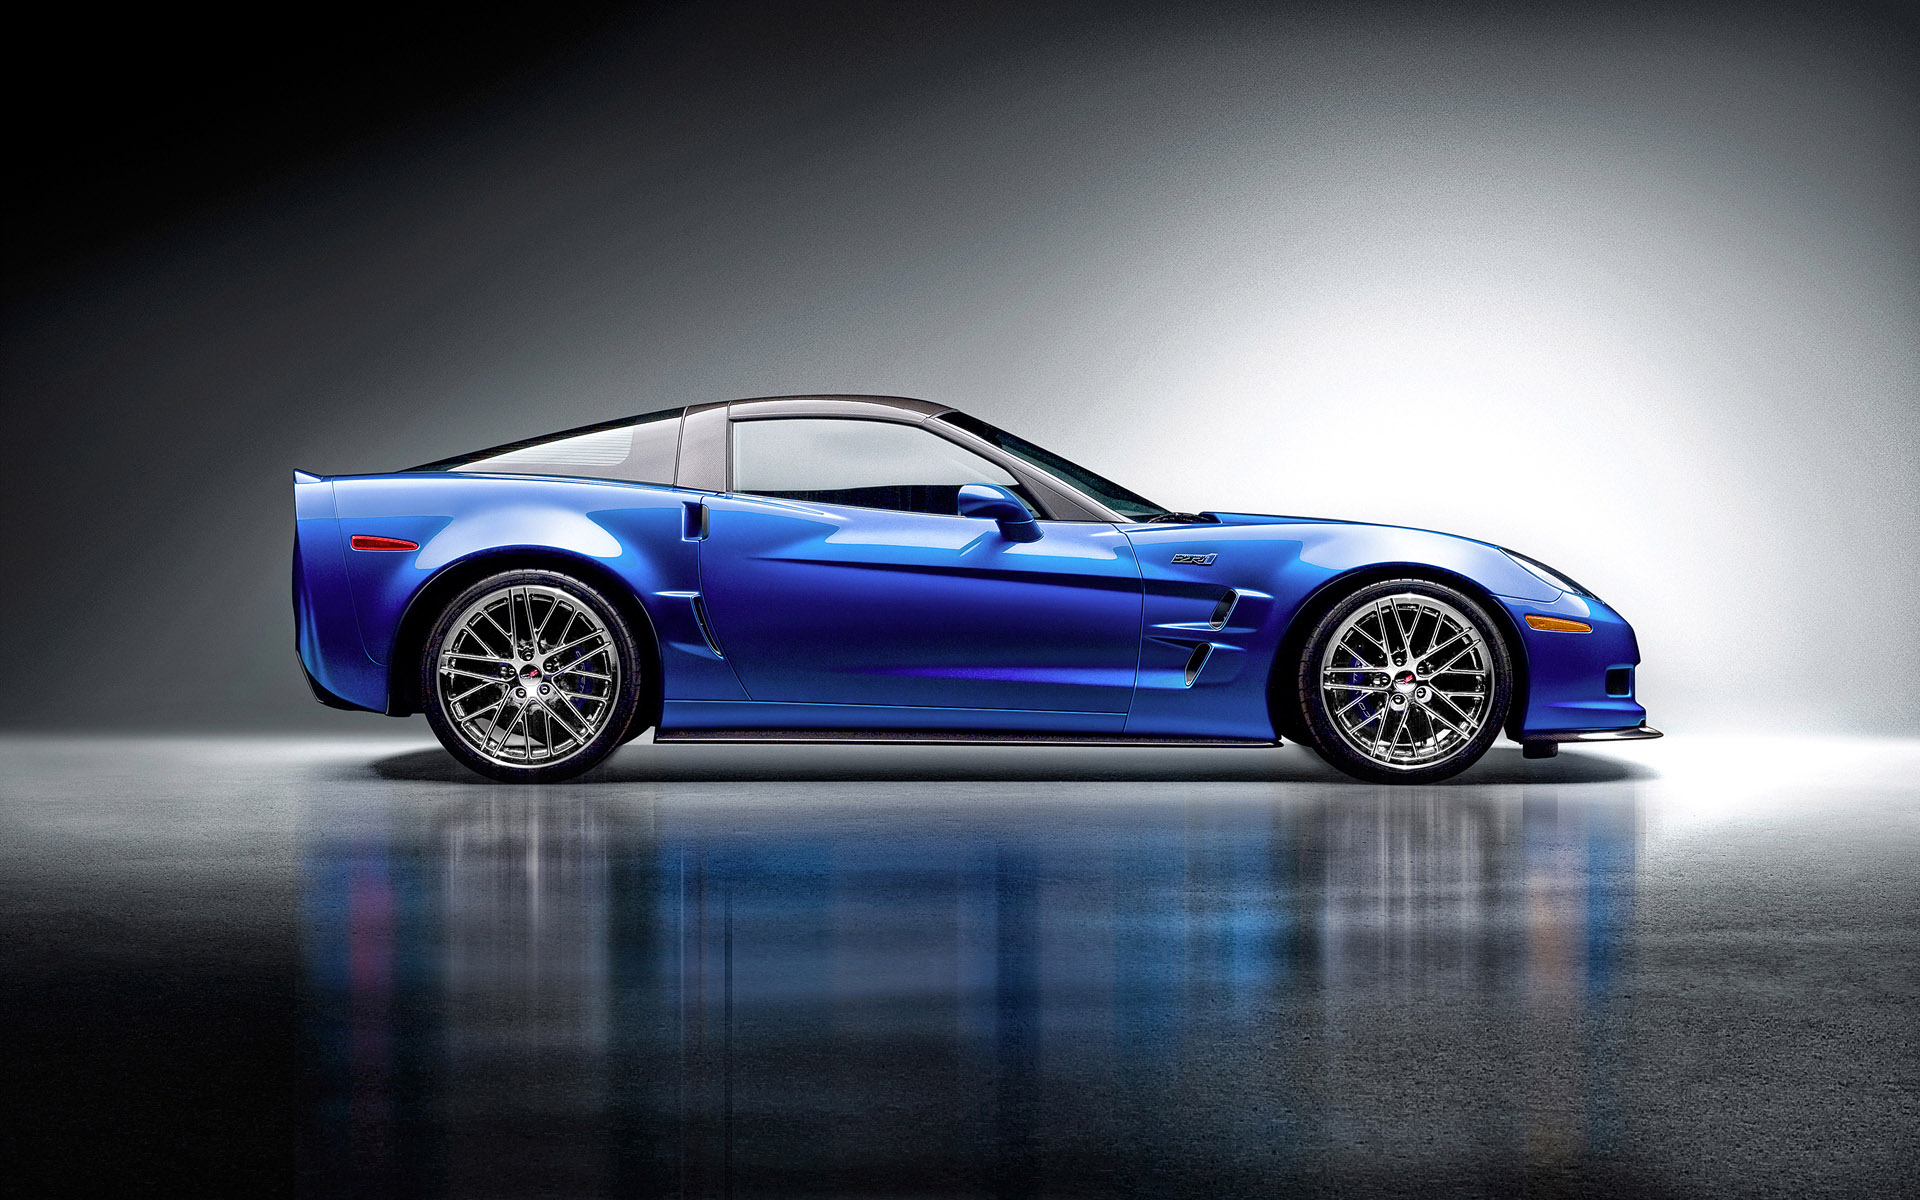 Corvette ZR1 by studio photographer Blair Bunting